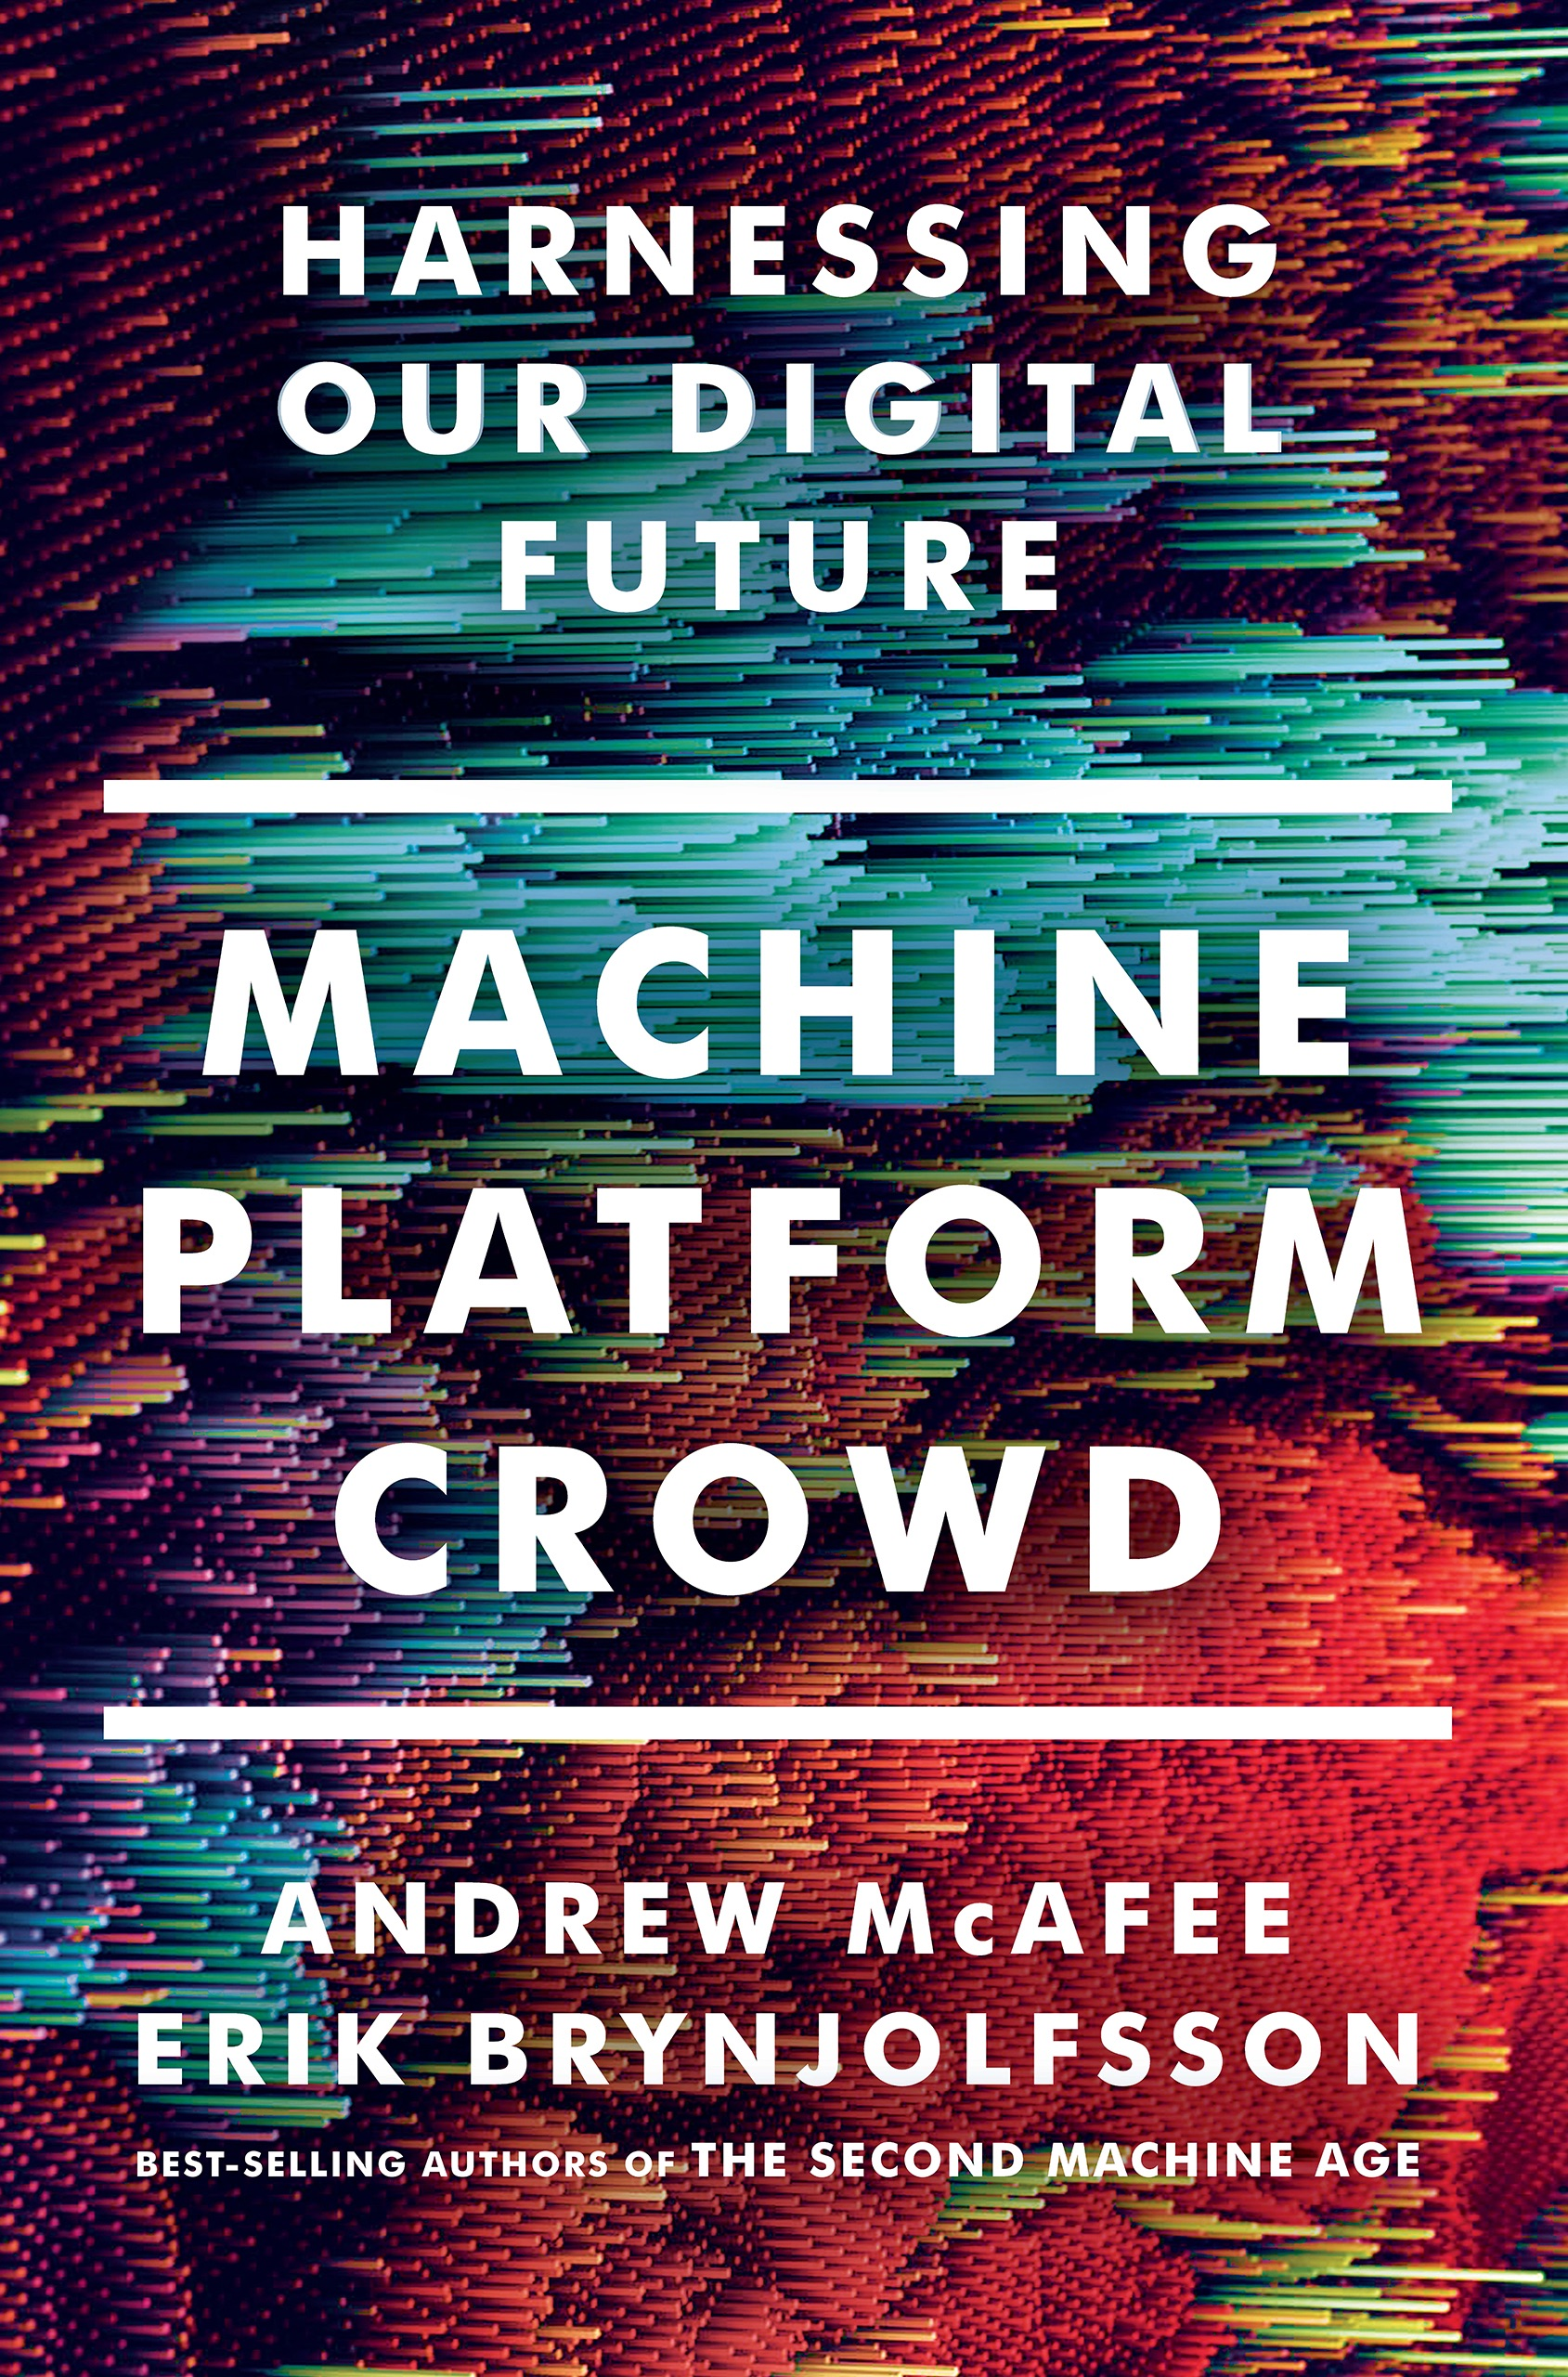 Book Cover of Machine, Platform, Crowd